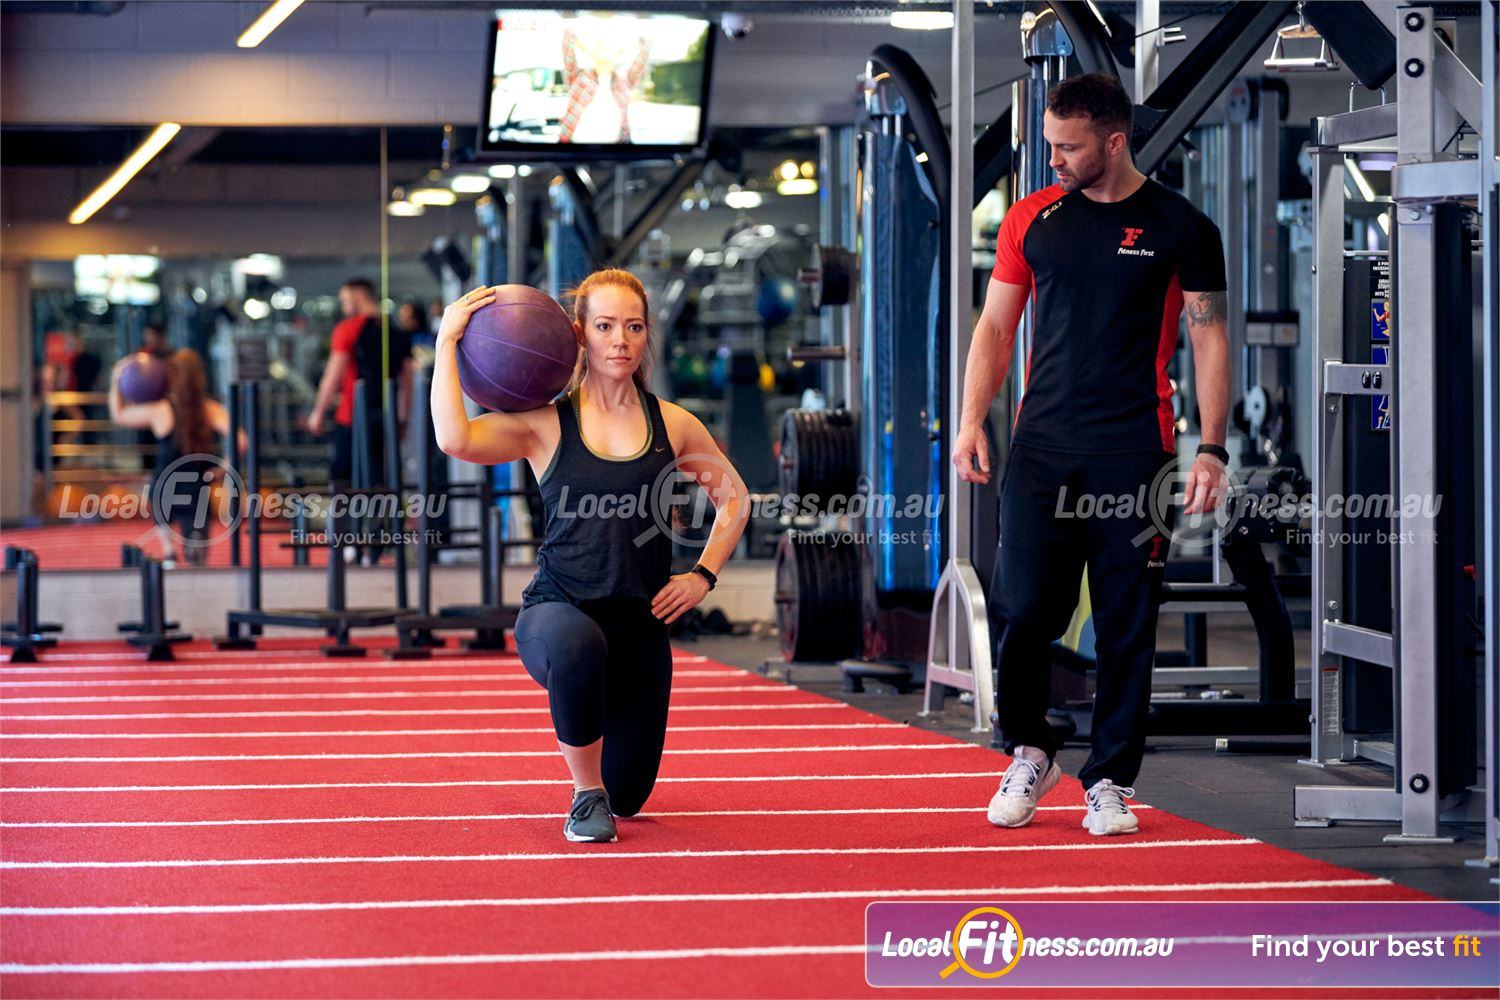 Fitness First Victoria Gardens Near South Yarra Our Richmond personal trainers can strengthen your core and glutes with lunges.